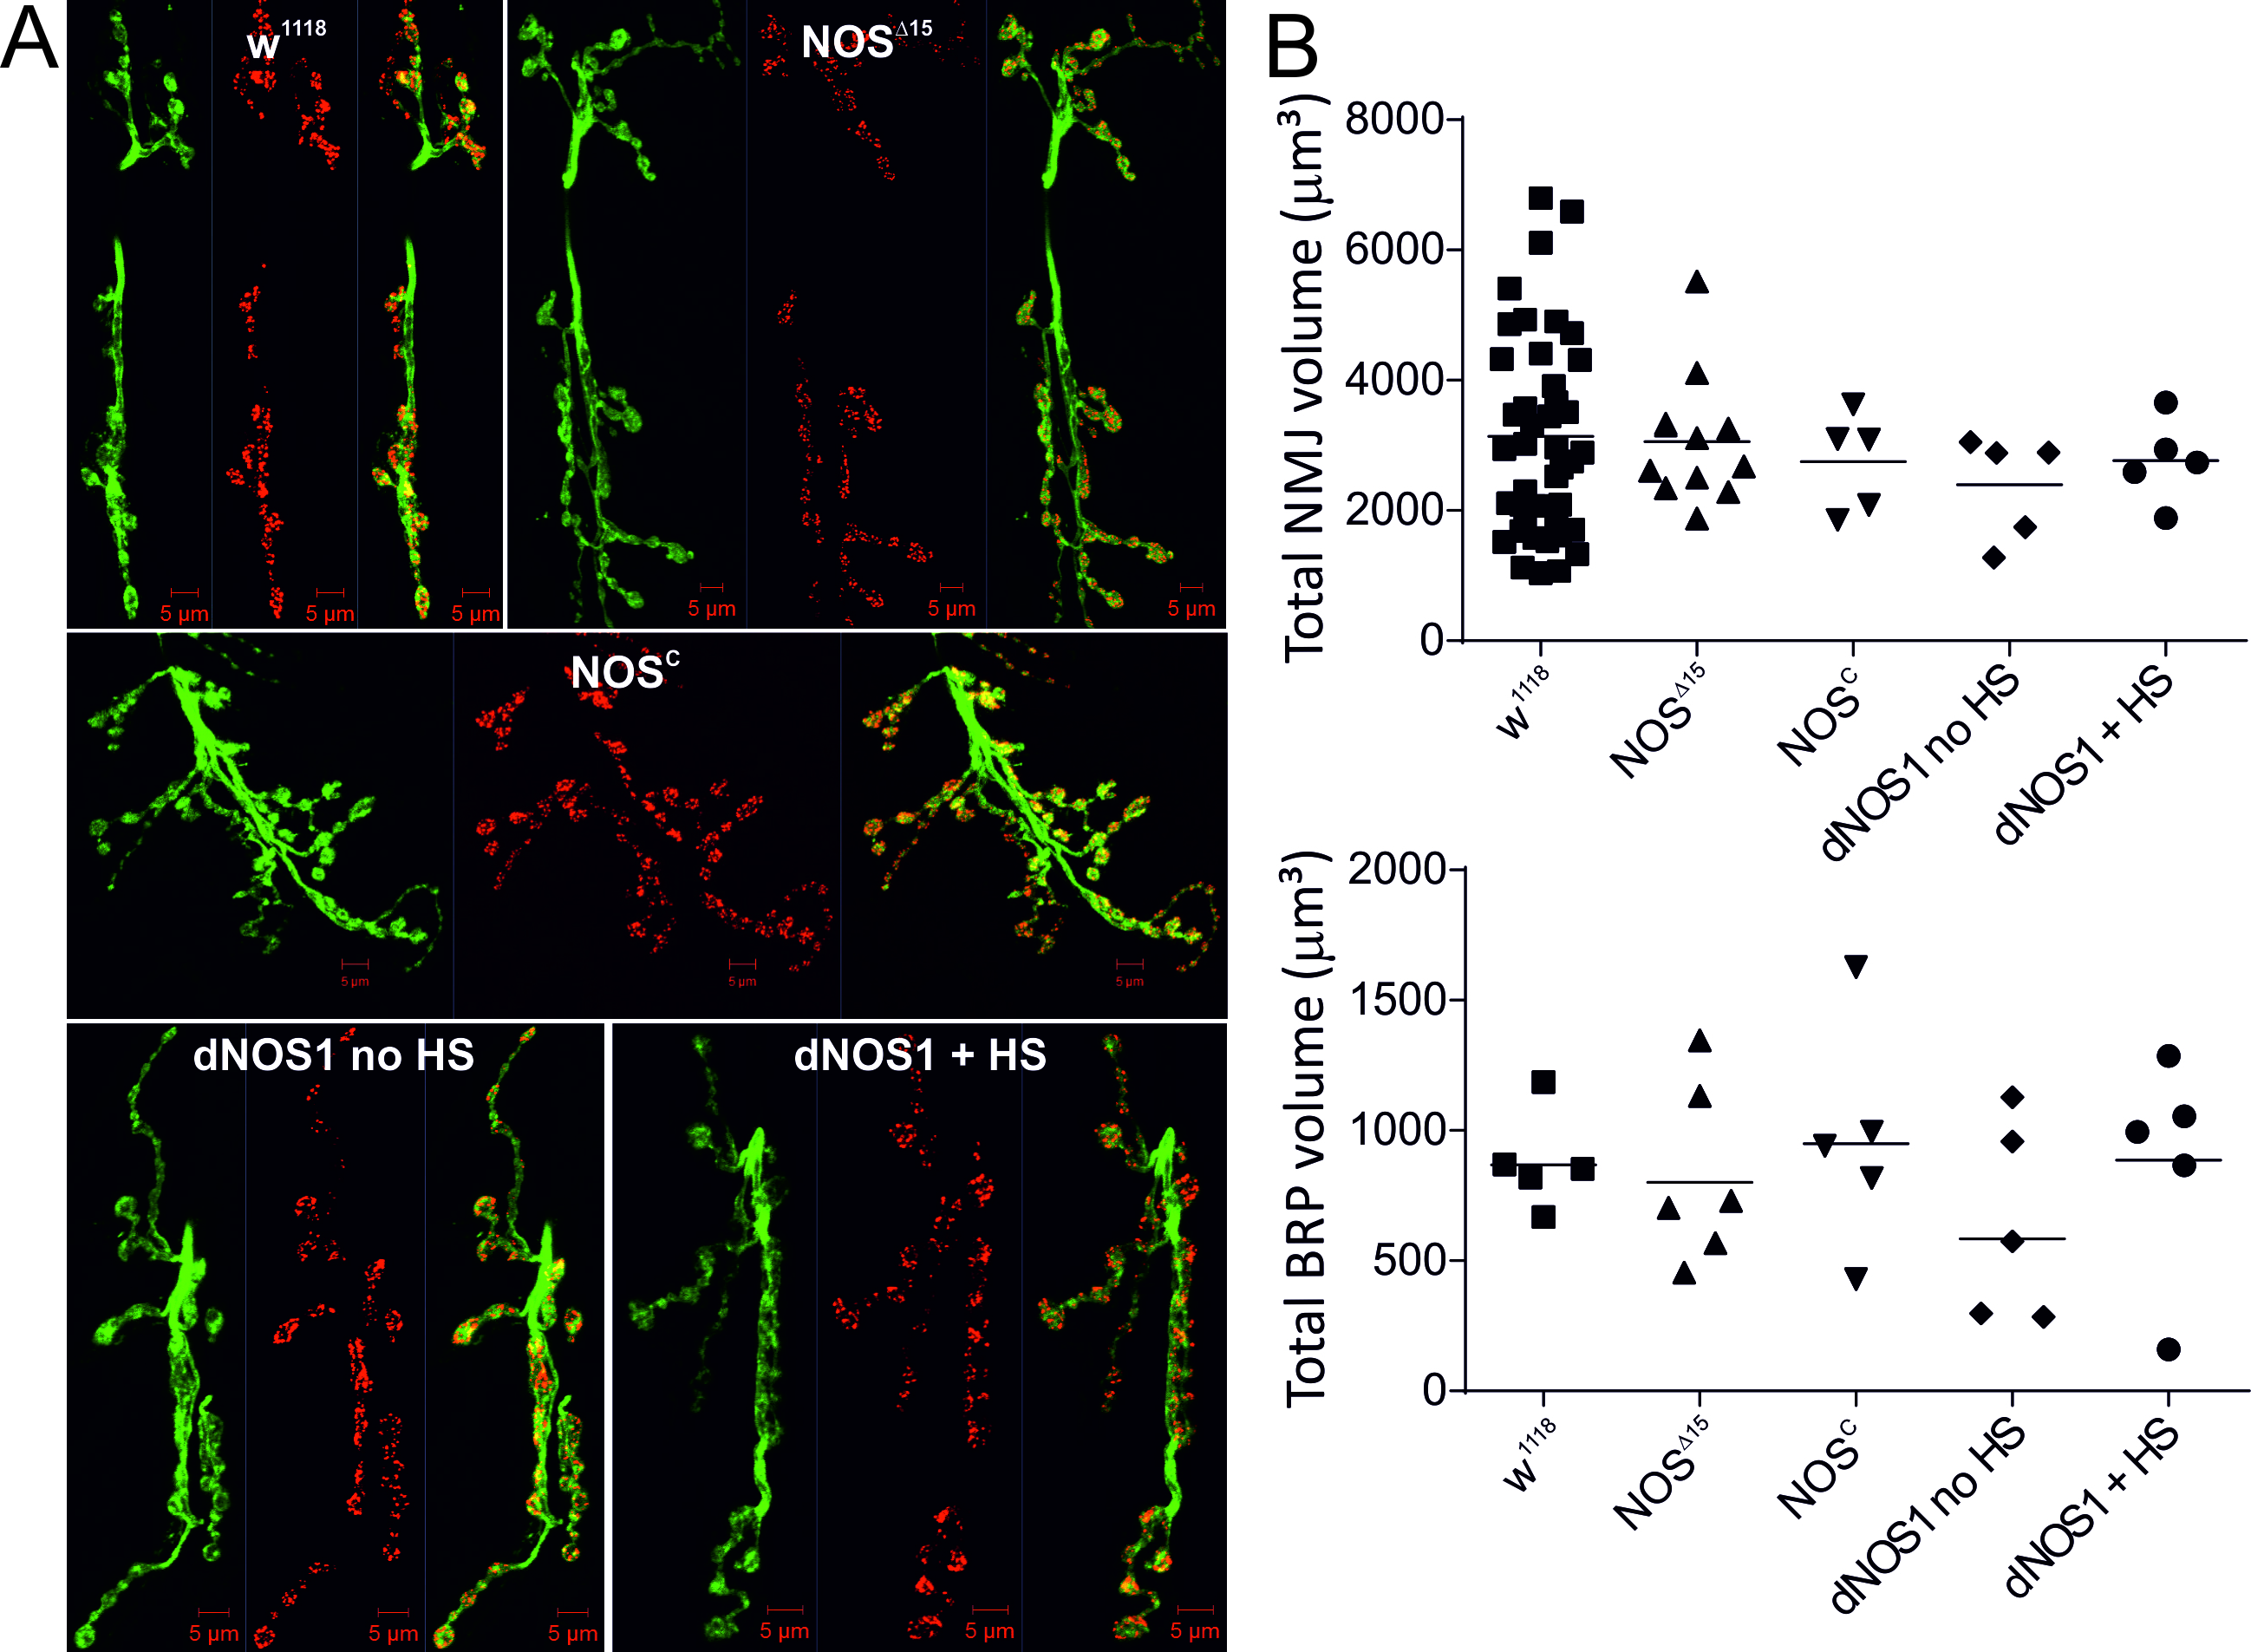 Figure 5. Changes in NOS activity do not cause developmental effects of NMJ morphology. A, Confocal maximal projection images of NMJs of indicated genotypes with HRP (green) and BRP (nc82, bruchpilot, red) labelling. B, Total NMJ volume and BRP volume were calculated form z-stack confocal images, analysis of NMJ and BRP volumes revealed no difference between genotypes, n=36-5 NMJs, p>0.05, ANOVA with post hoc Tukey-Kramer was used for comparisons.